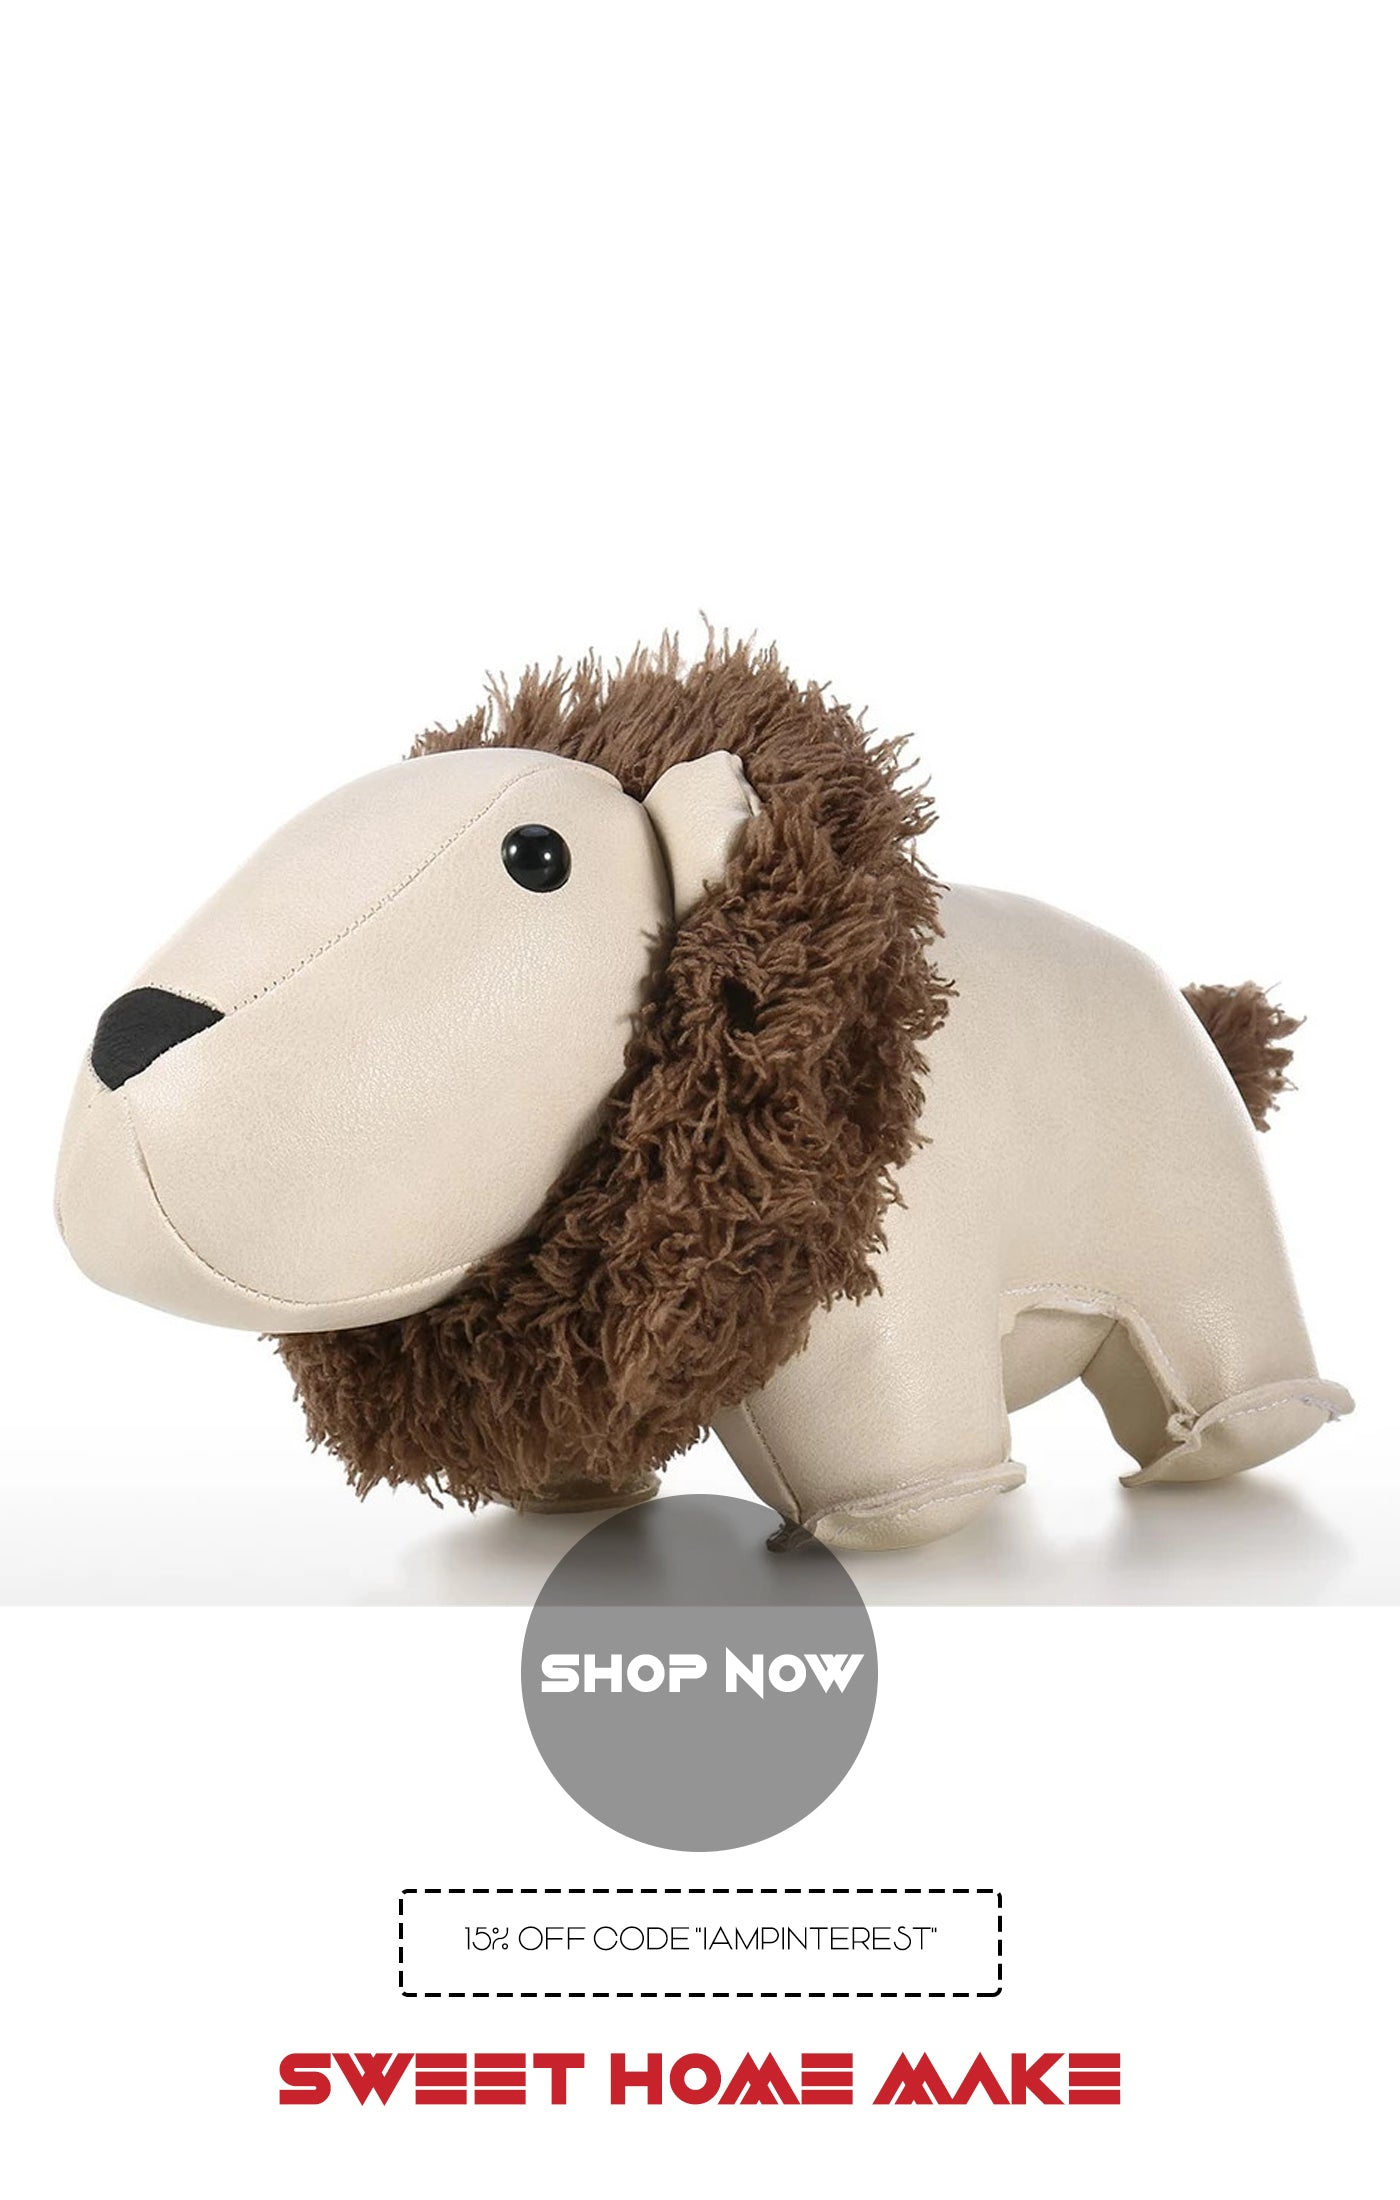 Lion Toys For Nursery and Kids as Online Store